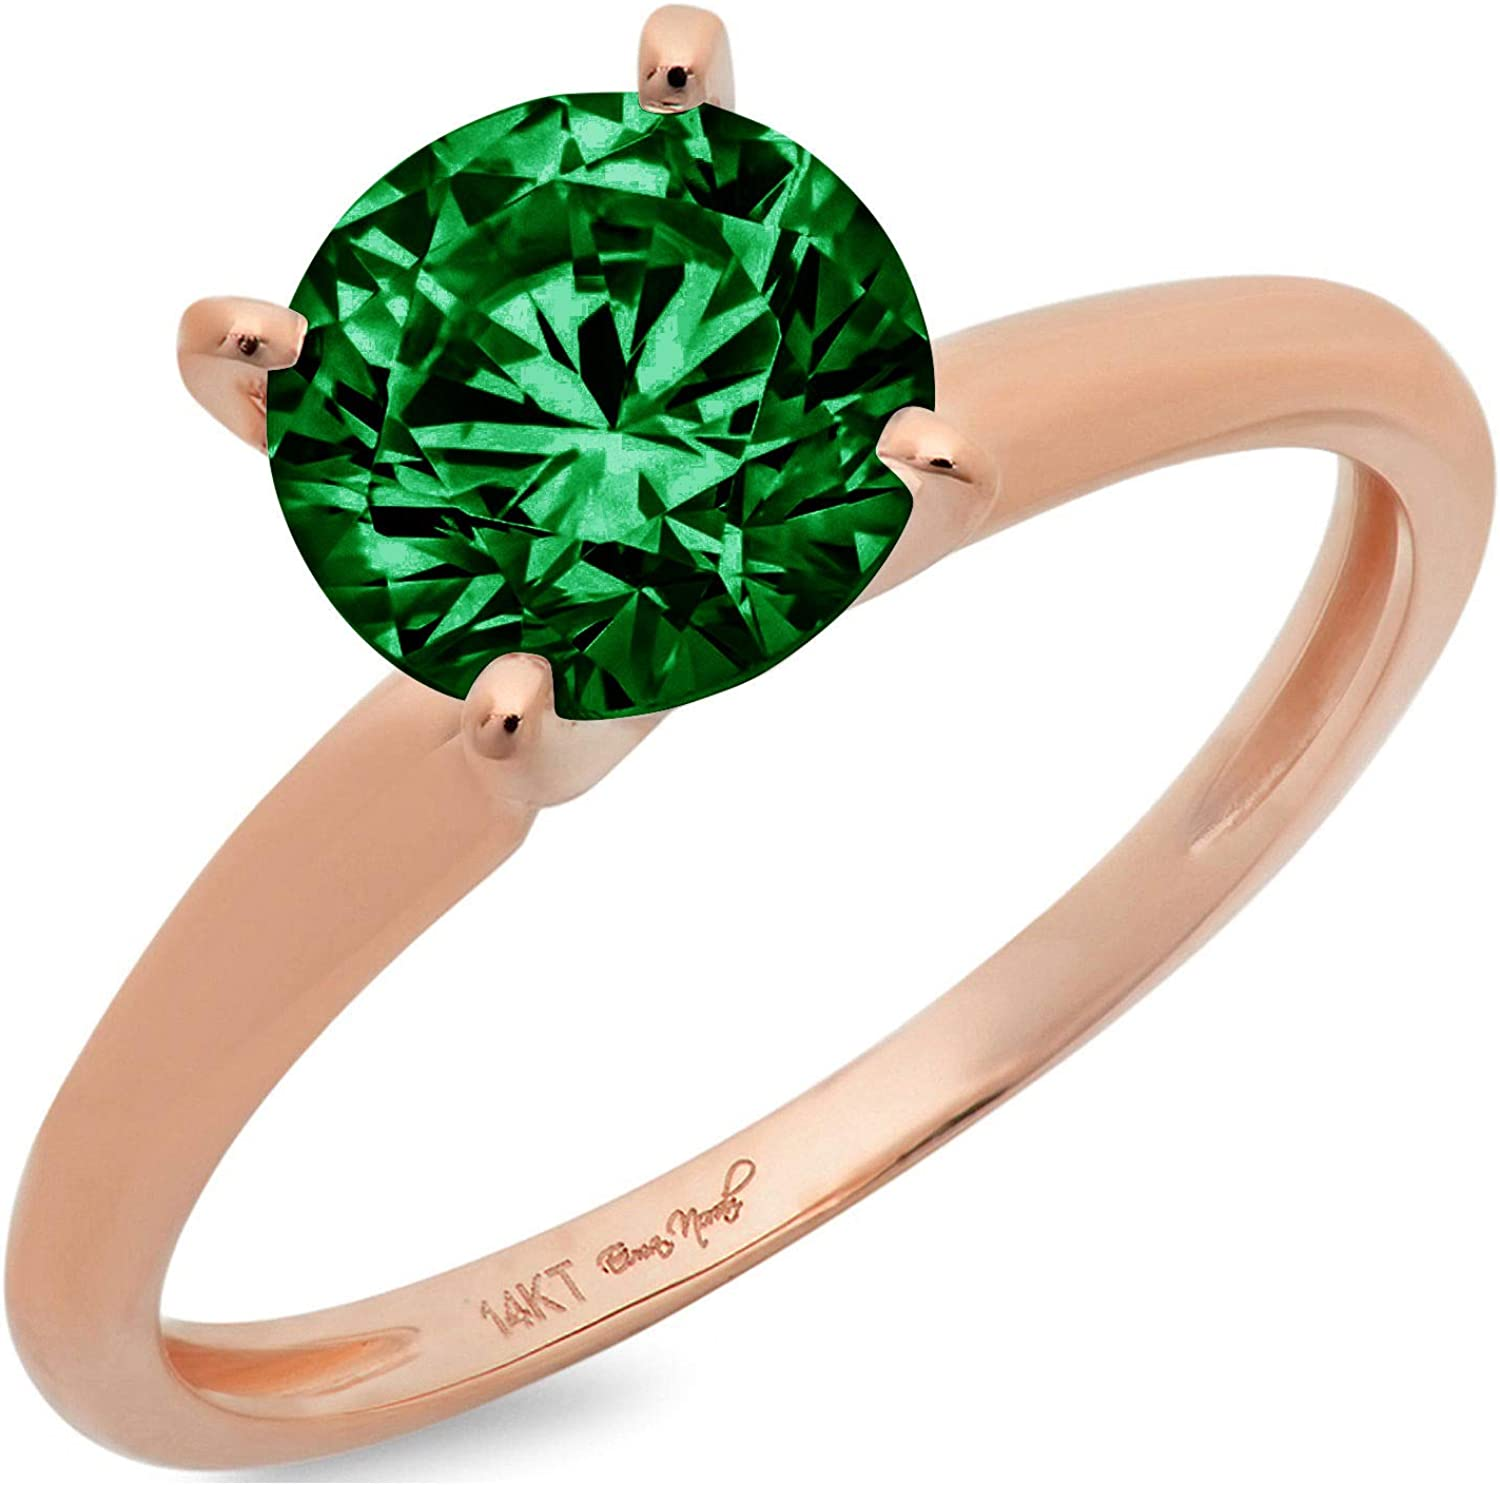 0.4ct Brilliant Round Cut Solitaire Flawless Simulated Cubic Zirconia Green Emerald Ideal VVS1 4-Prong Engagement Wedding Bridal Promise Anniversary Designer Ring in Solid 14k Rose Gold for Women